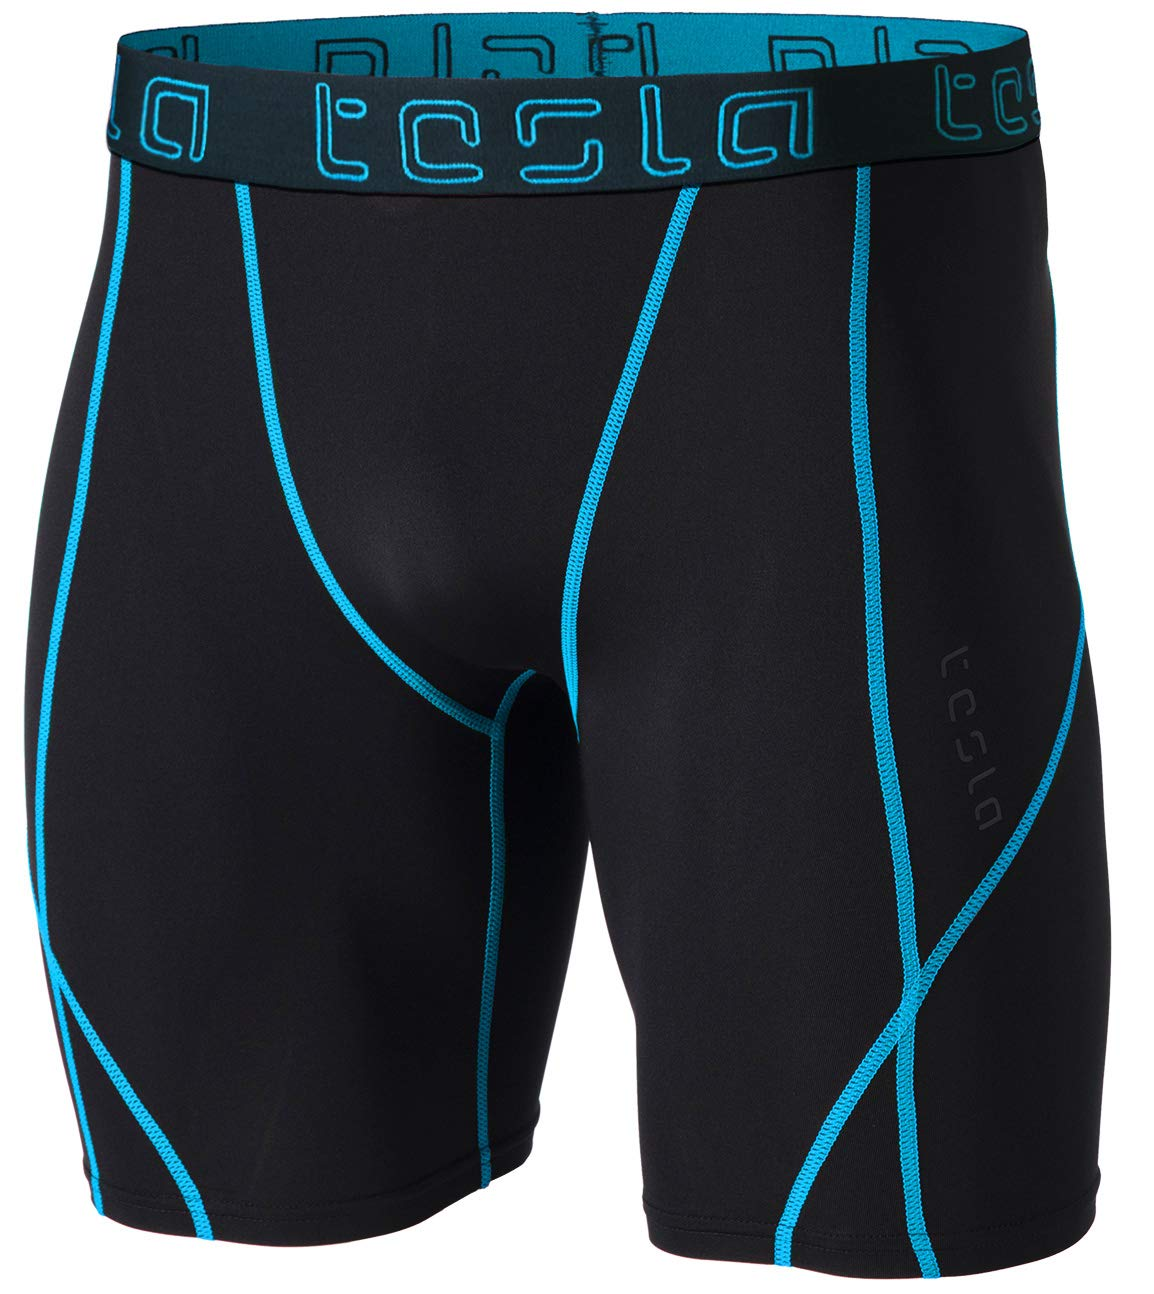 TSLA Men's Compression Shorts Baselayer Cool Dry